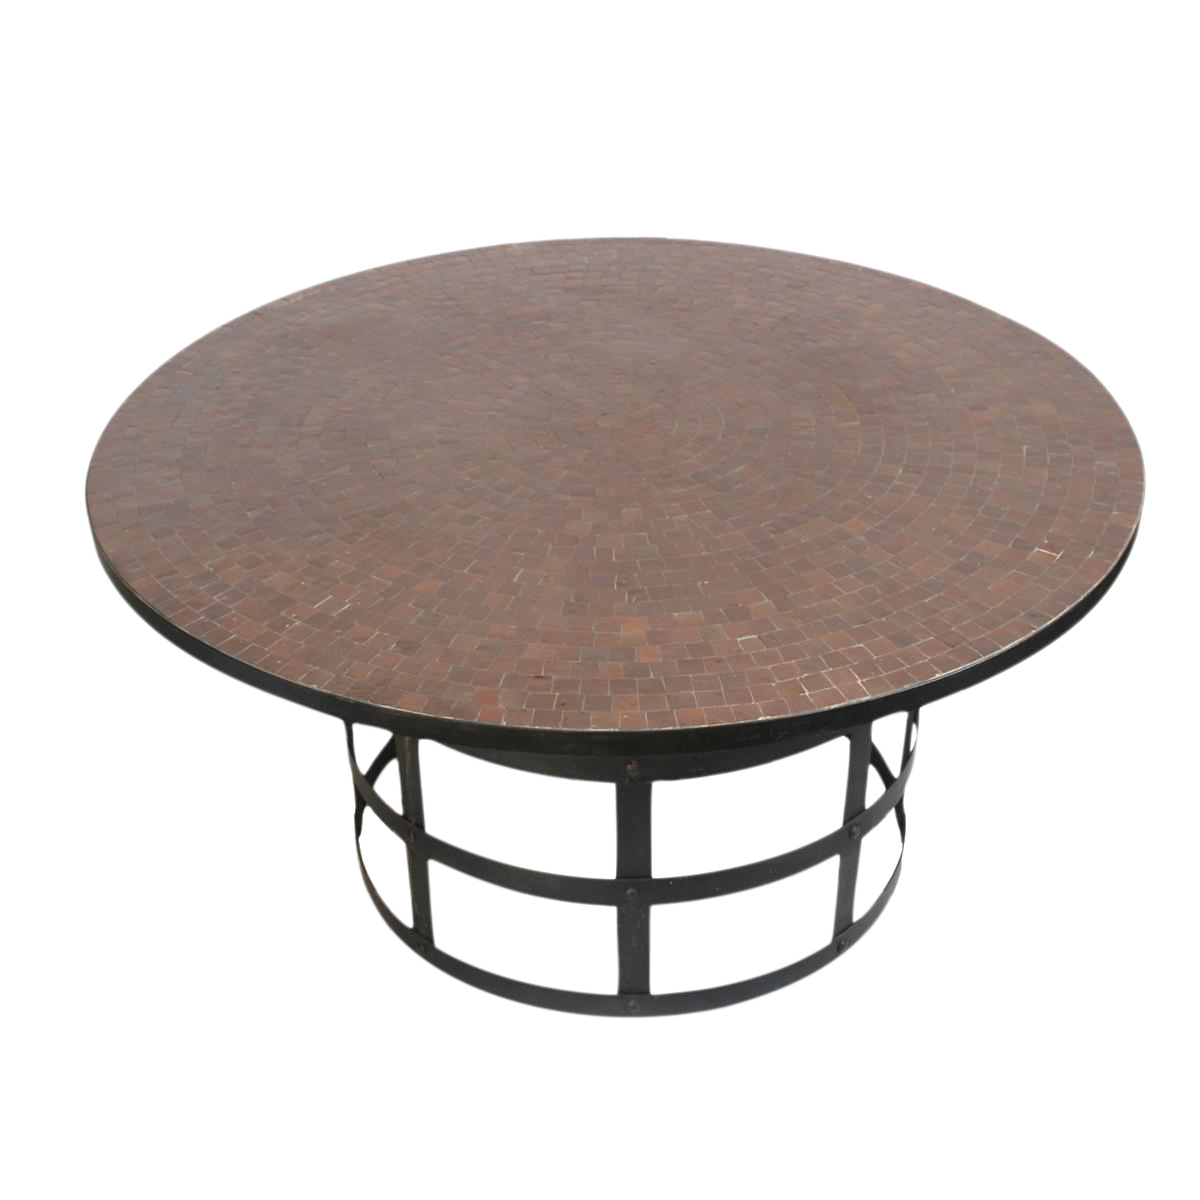 Round Mosaic Tile Dining Table Chairish